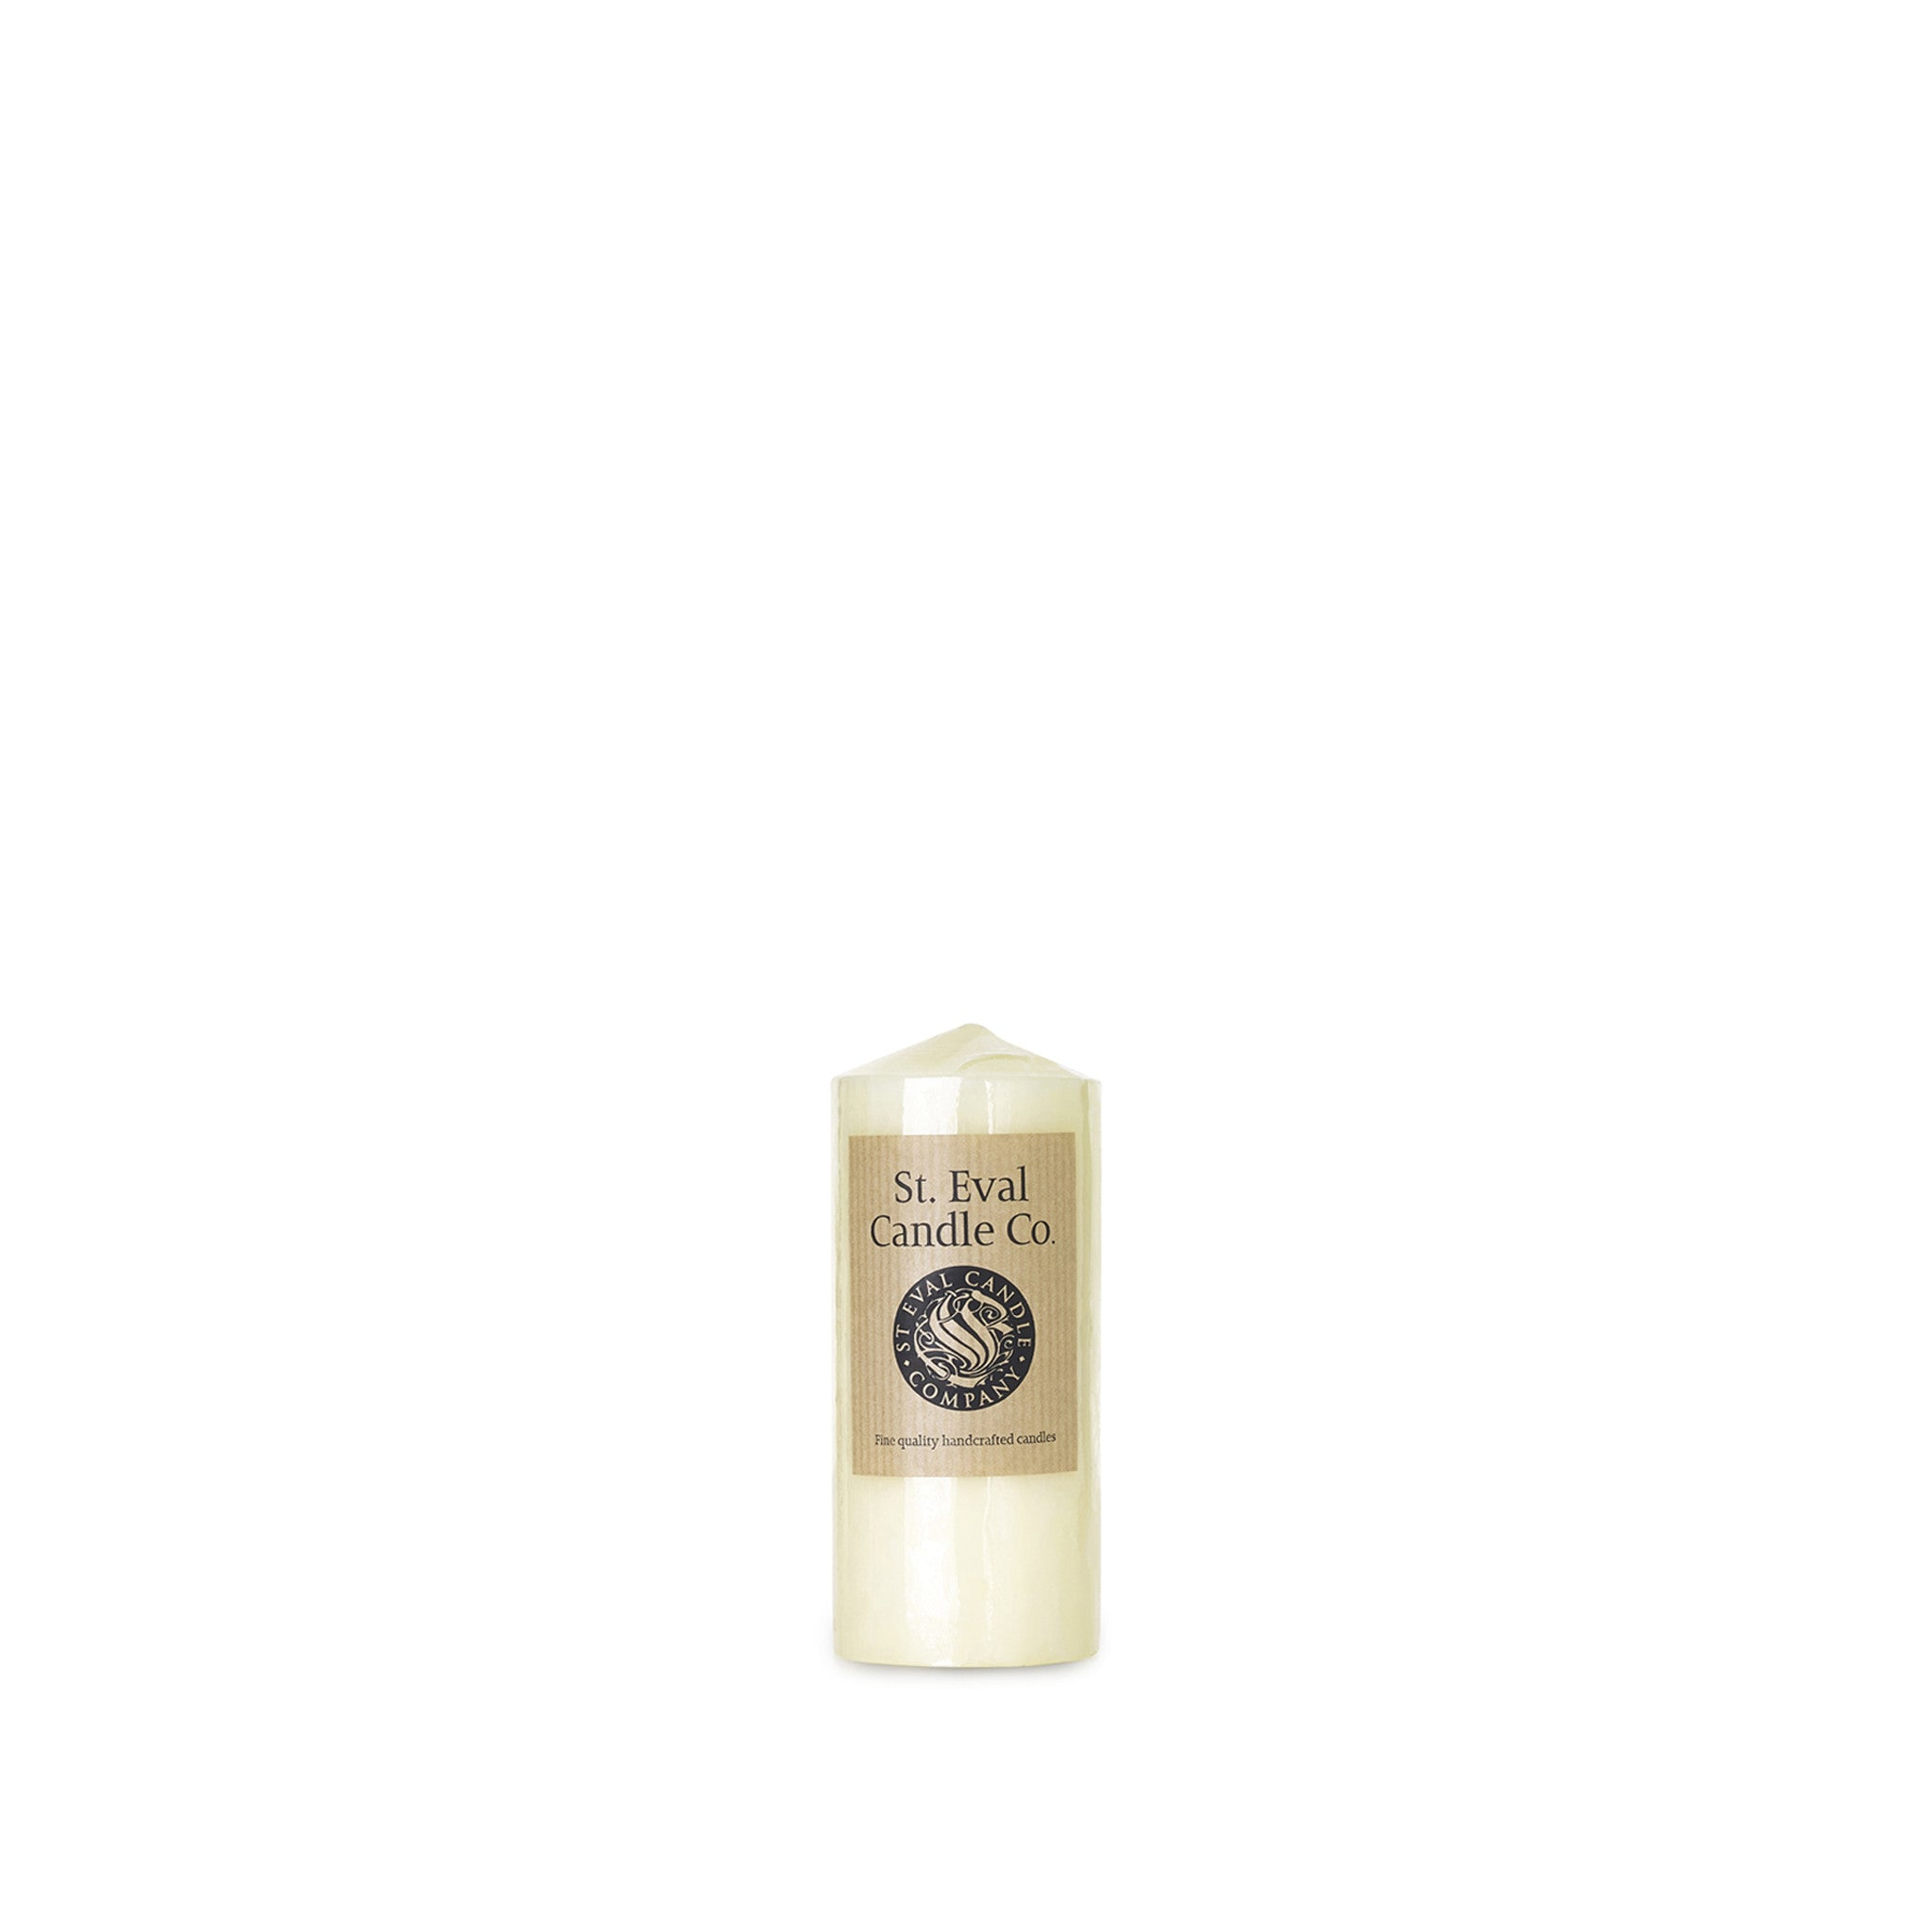 Medium Church Candle in Ivory